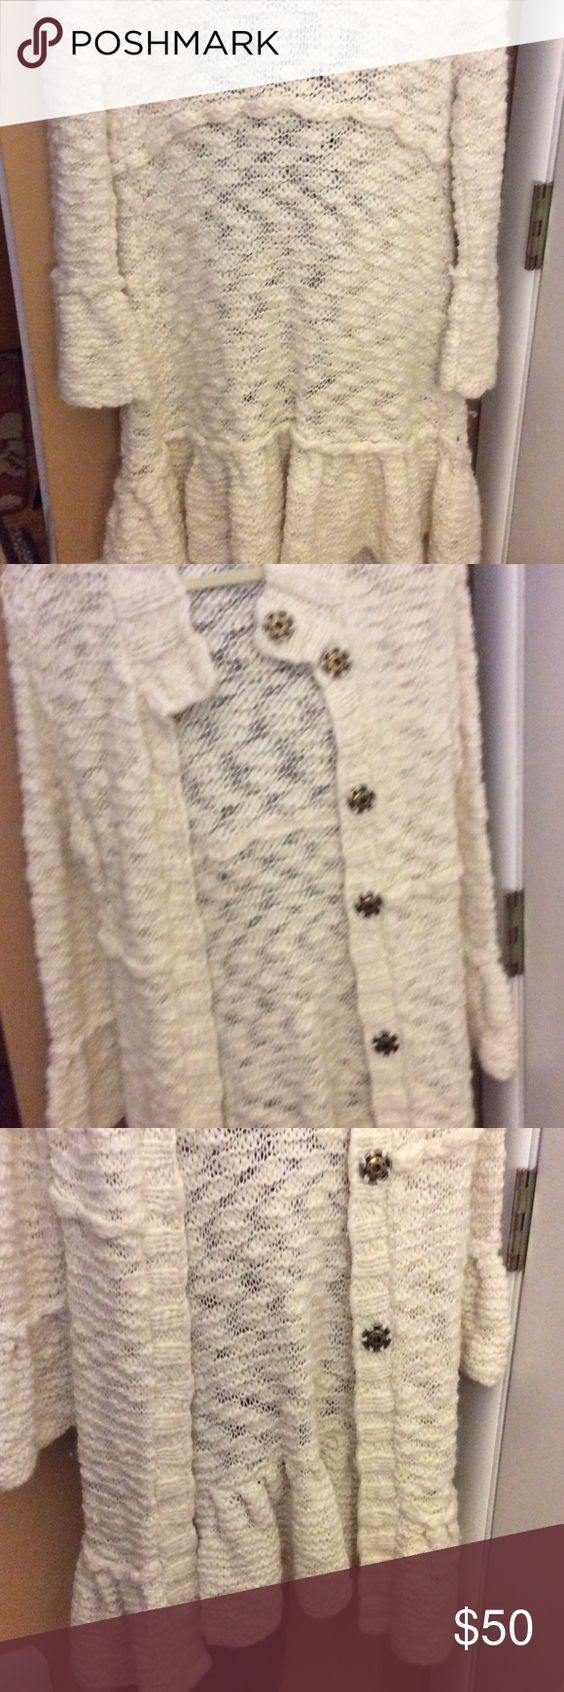 Free people sweater coat Beautiful Freepeople long sweater coat !!! Not meant for super cold weather . Perfect condition size large . Would be cute with jeans and boots or dressed up !! Free People Jackets & Coats